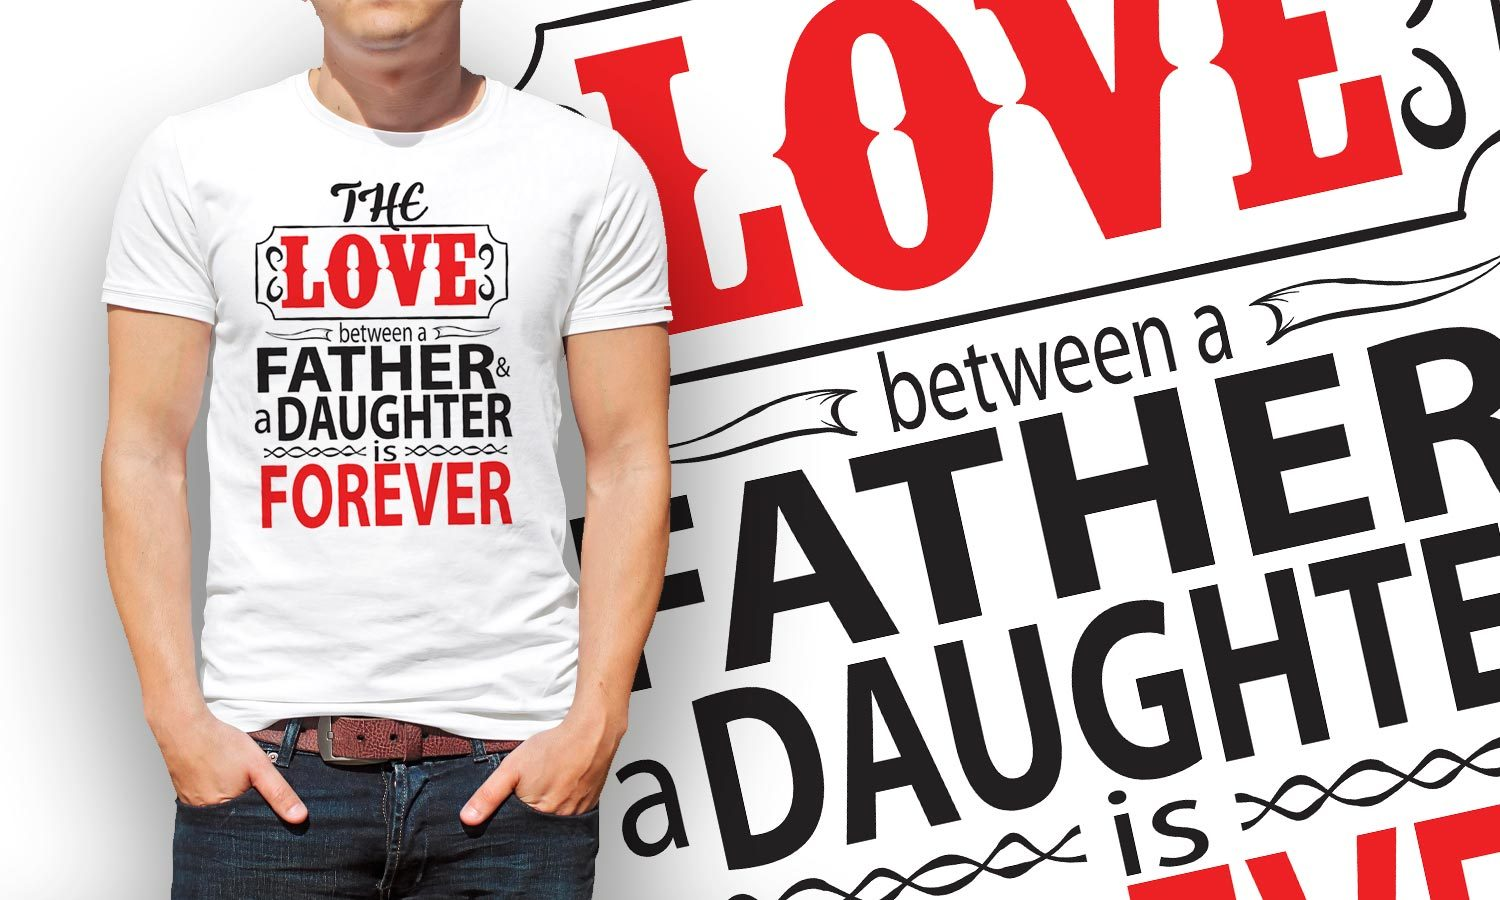 Father Daughter Forever - Printed T-Shirt for Men, Women and Kids - TS125